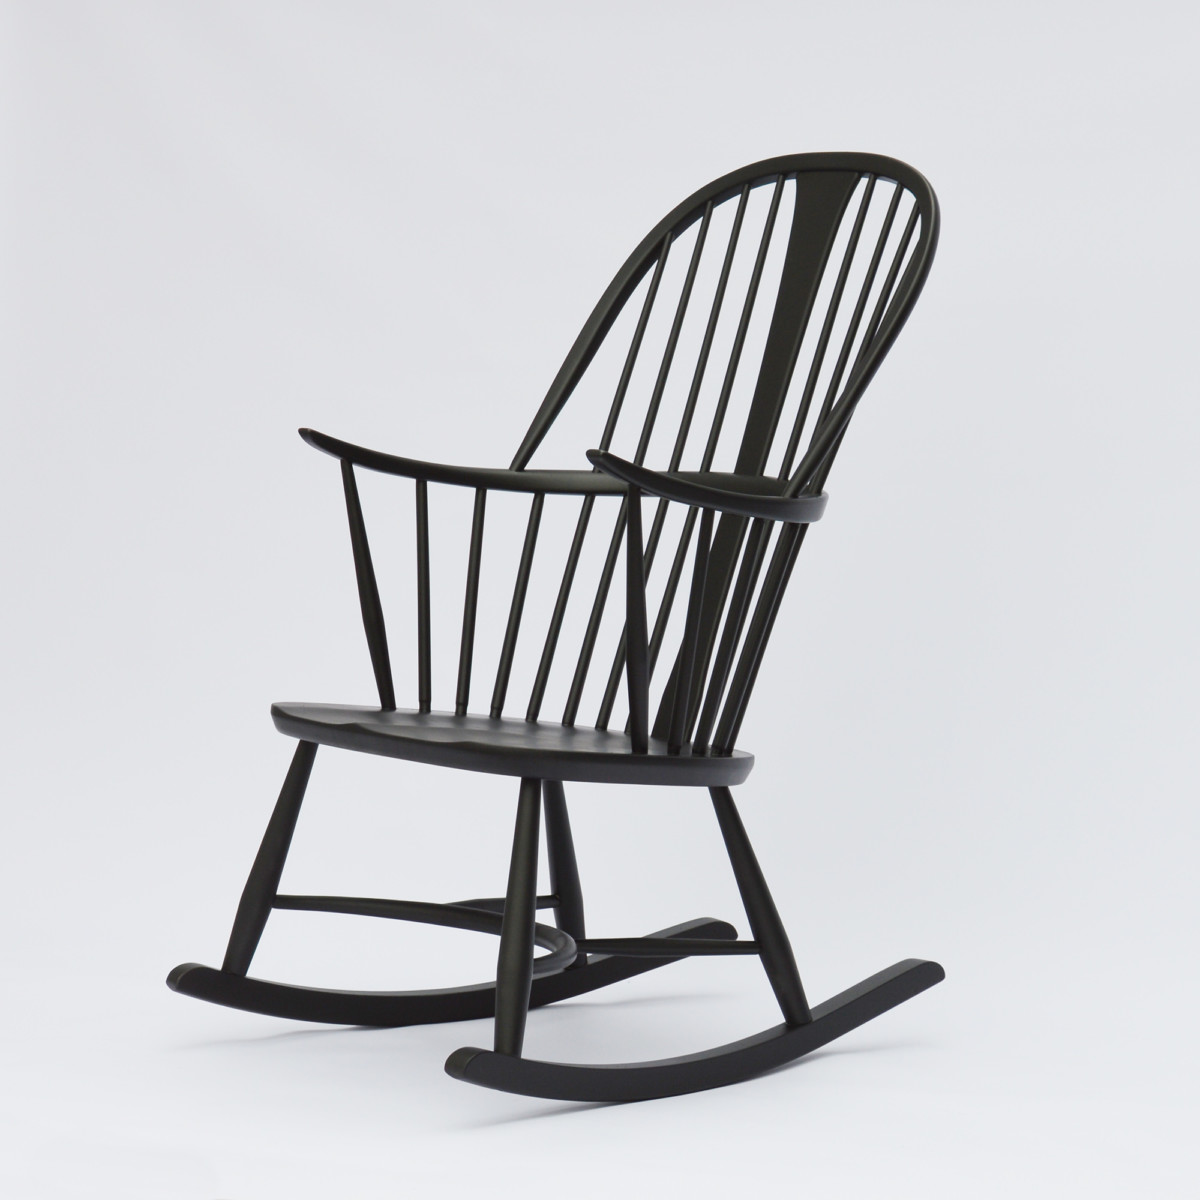 ercol schaukelstuhl chairmakers rocking chair. Black Bedroom Furniture Sets. Home Design Ideas